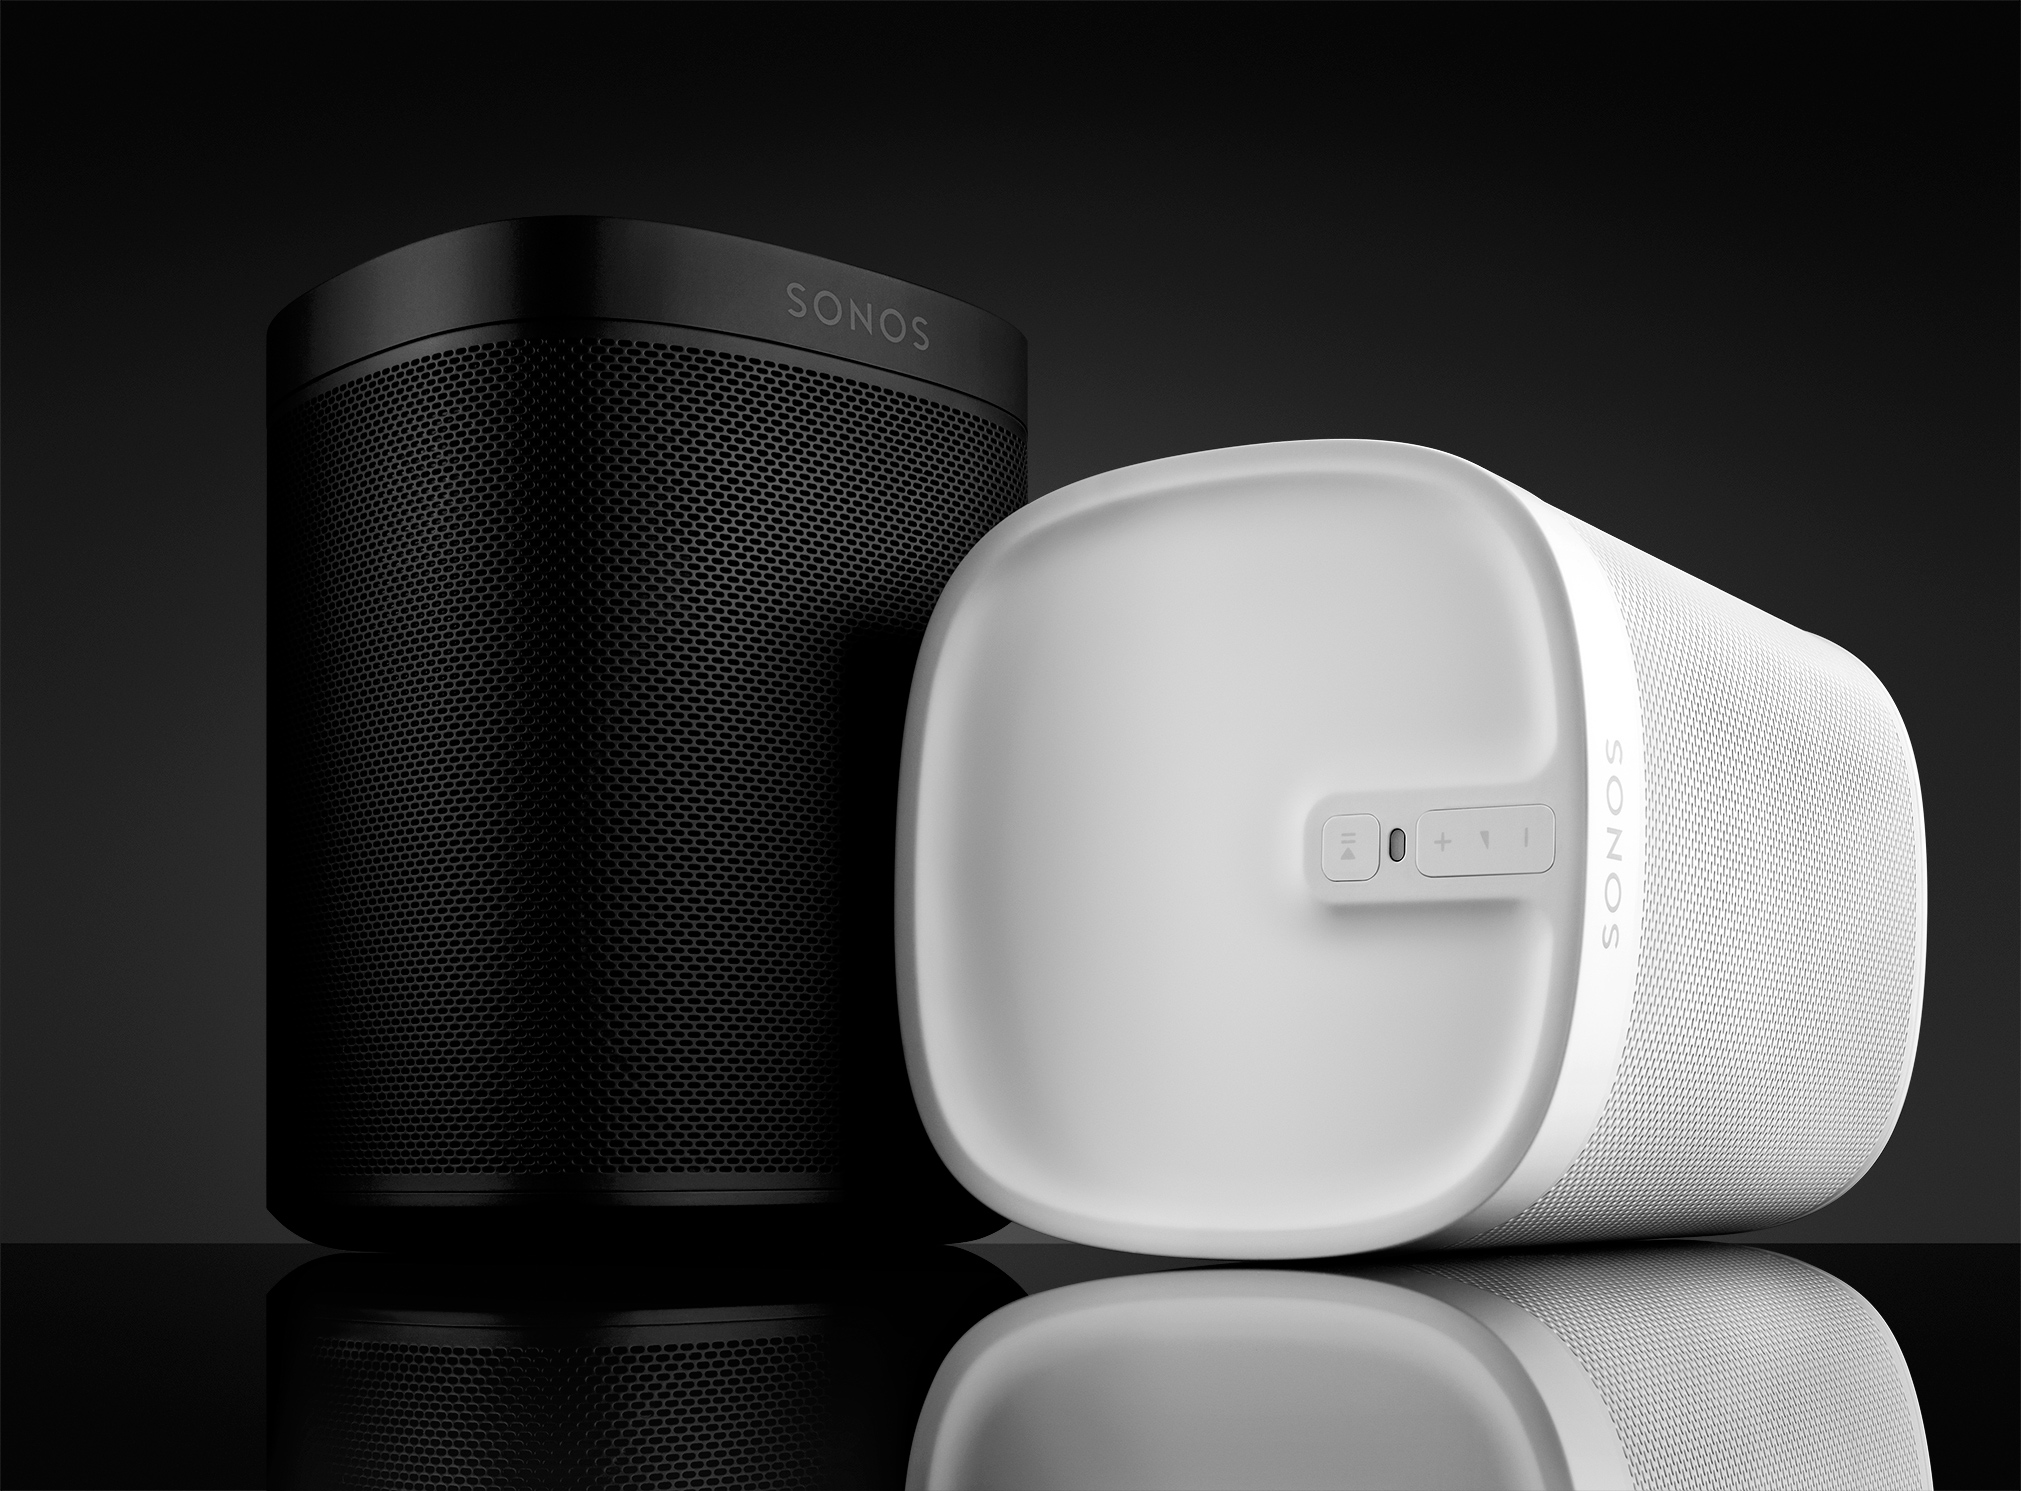 Sonos unveils a limited-edition version of the Play:1 speaker